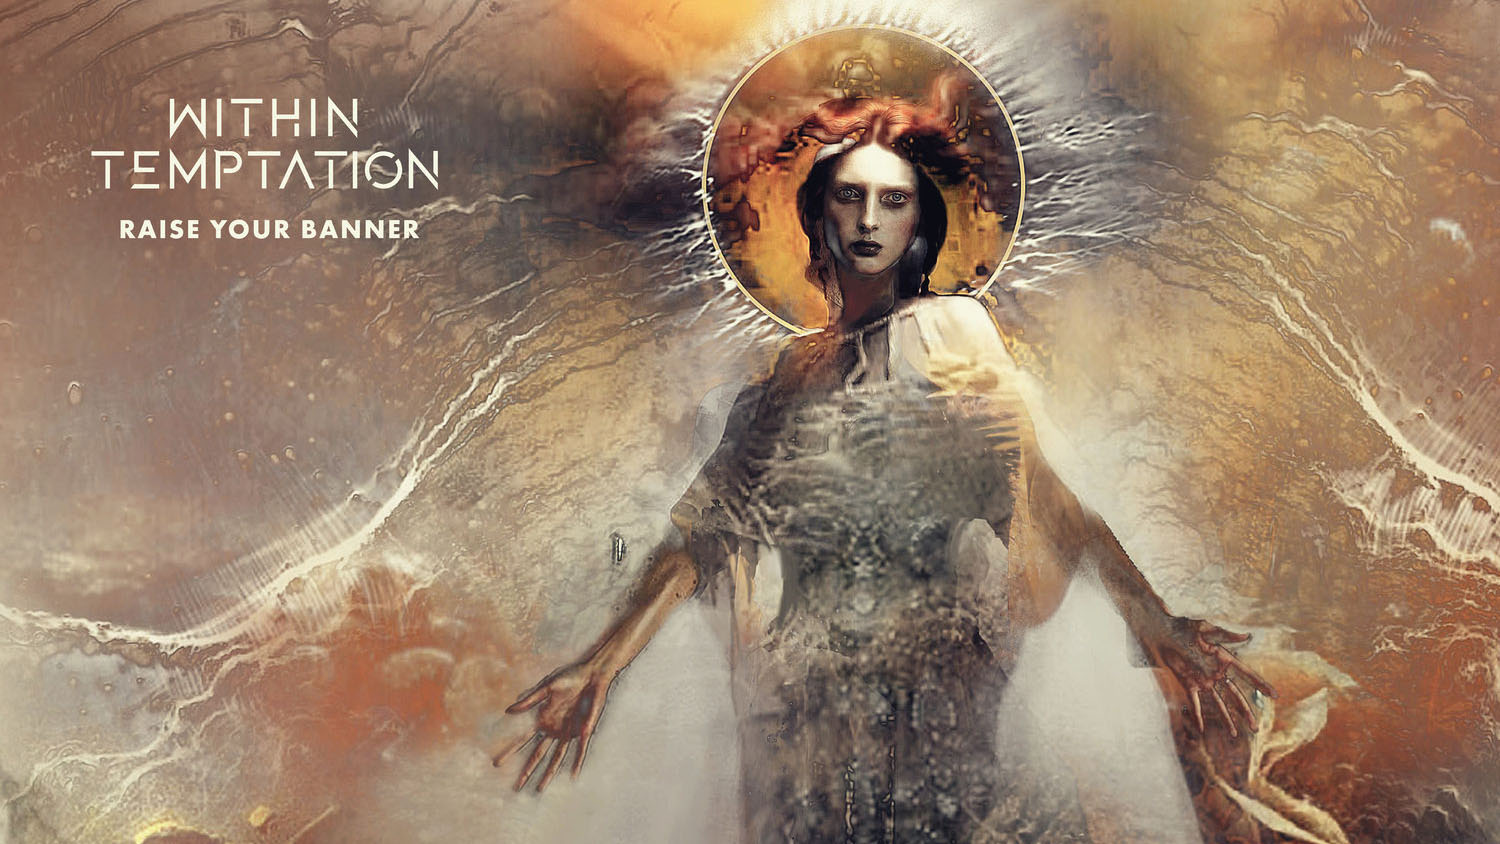 Within Temptation CD Single 2018 Raise Your Banner Anders Friden RESIST Album